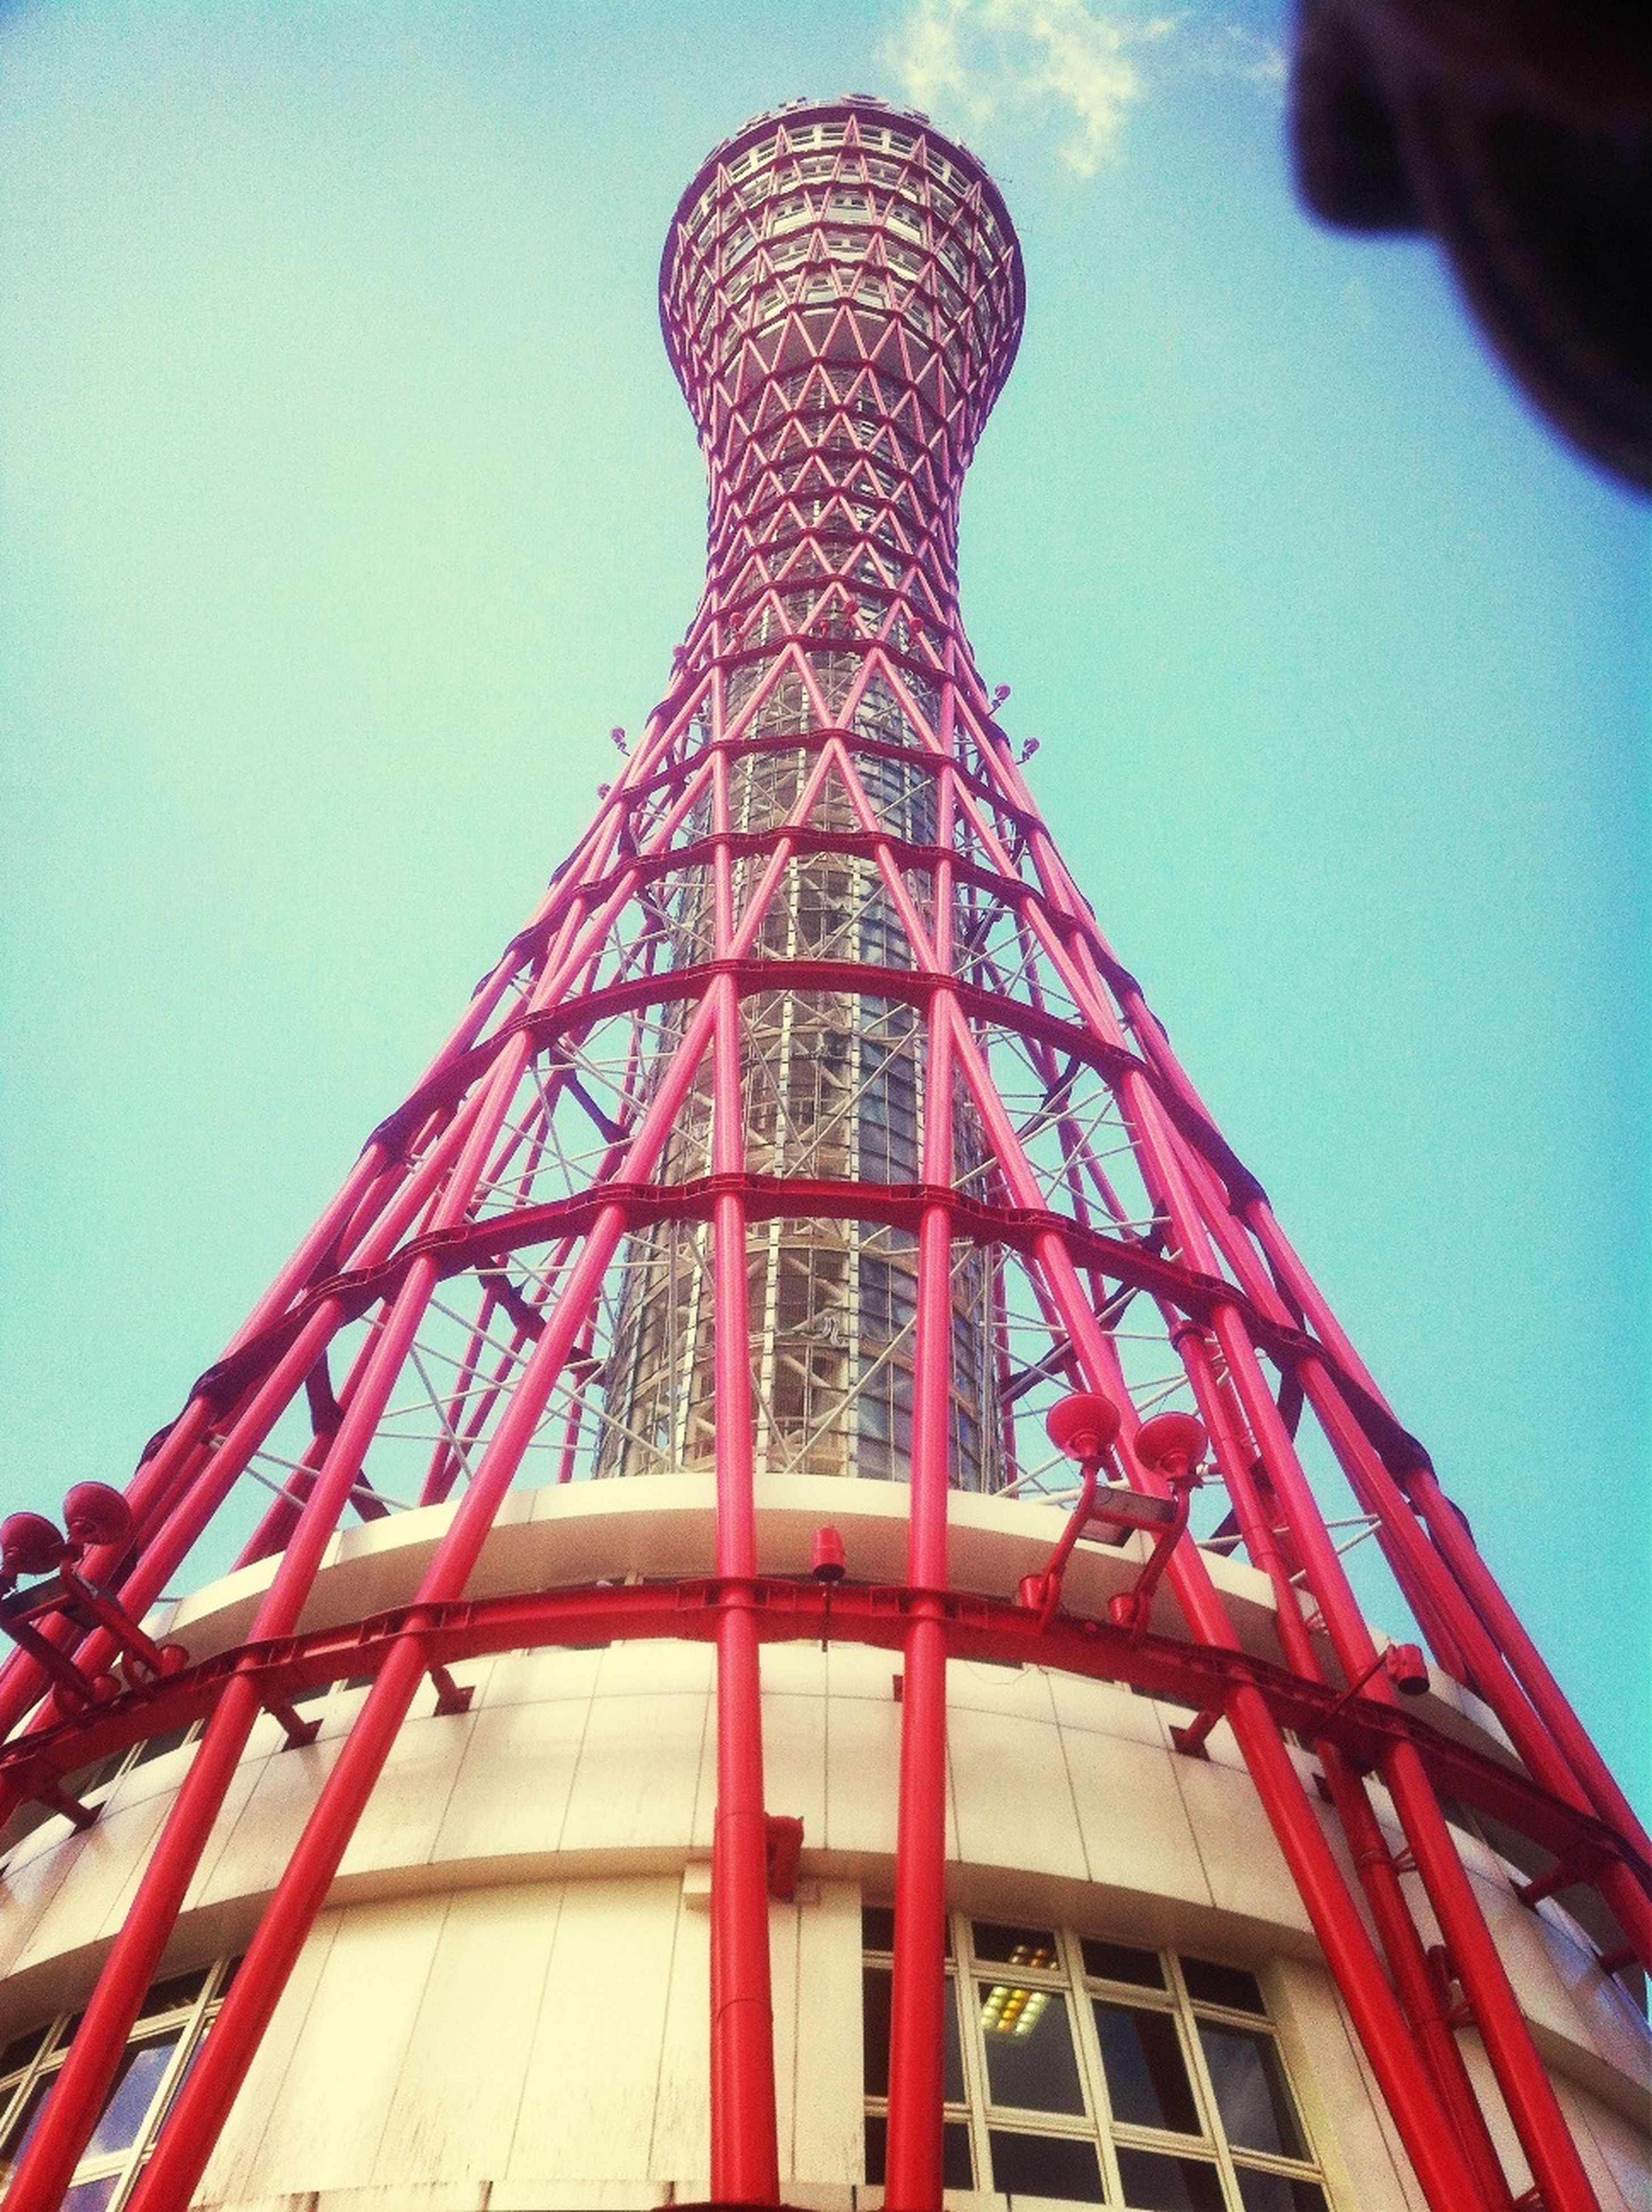 low angle view, architecture, built structure, red, building exterior, clear sky, tower, tall - high, famous place, blue, sky, international landmark, capital cities, metal, travel destinations, day, outdoors, no people, city, travel